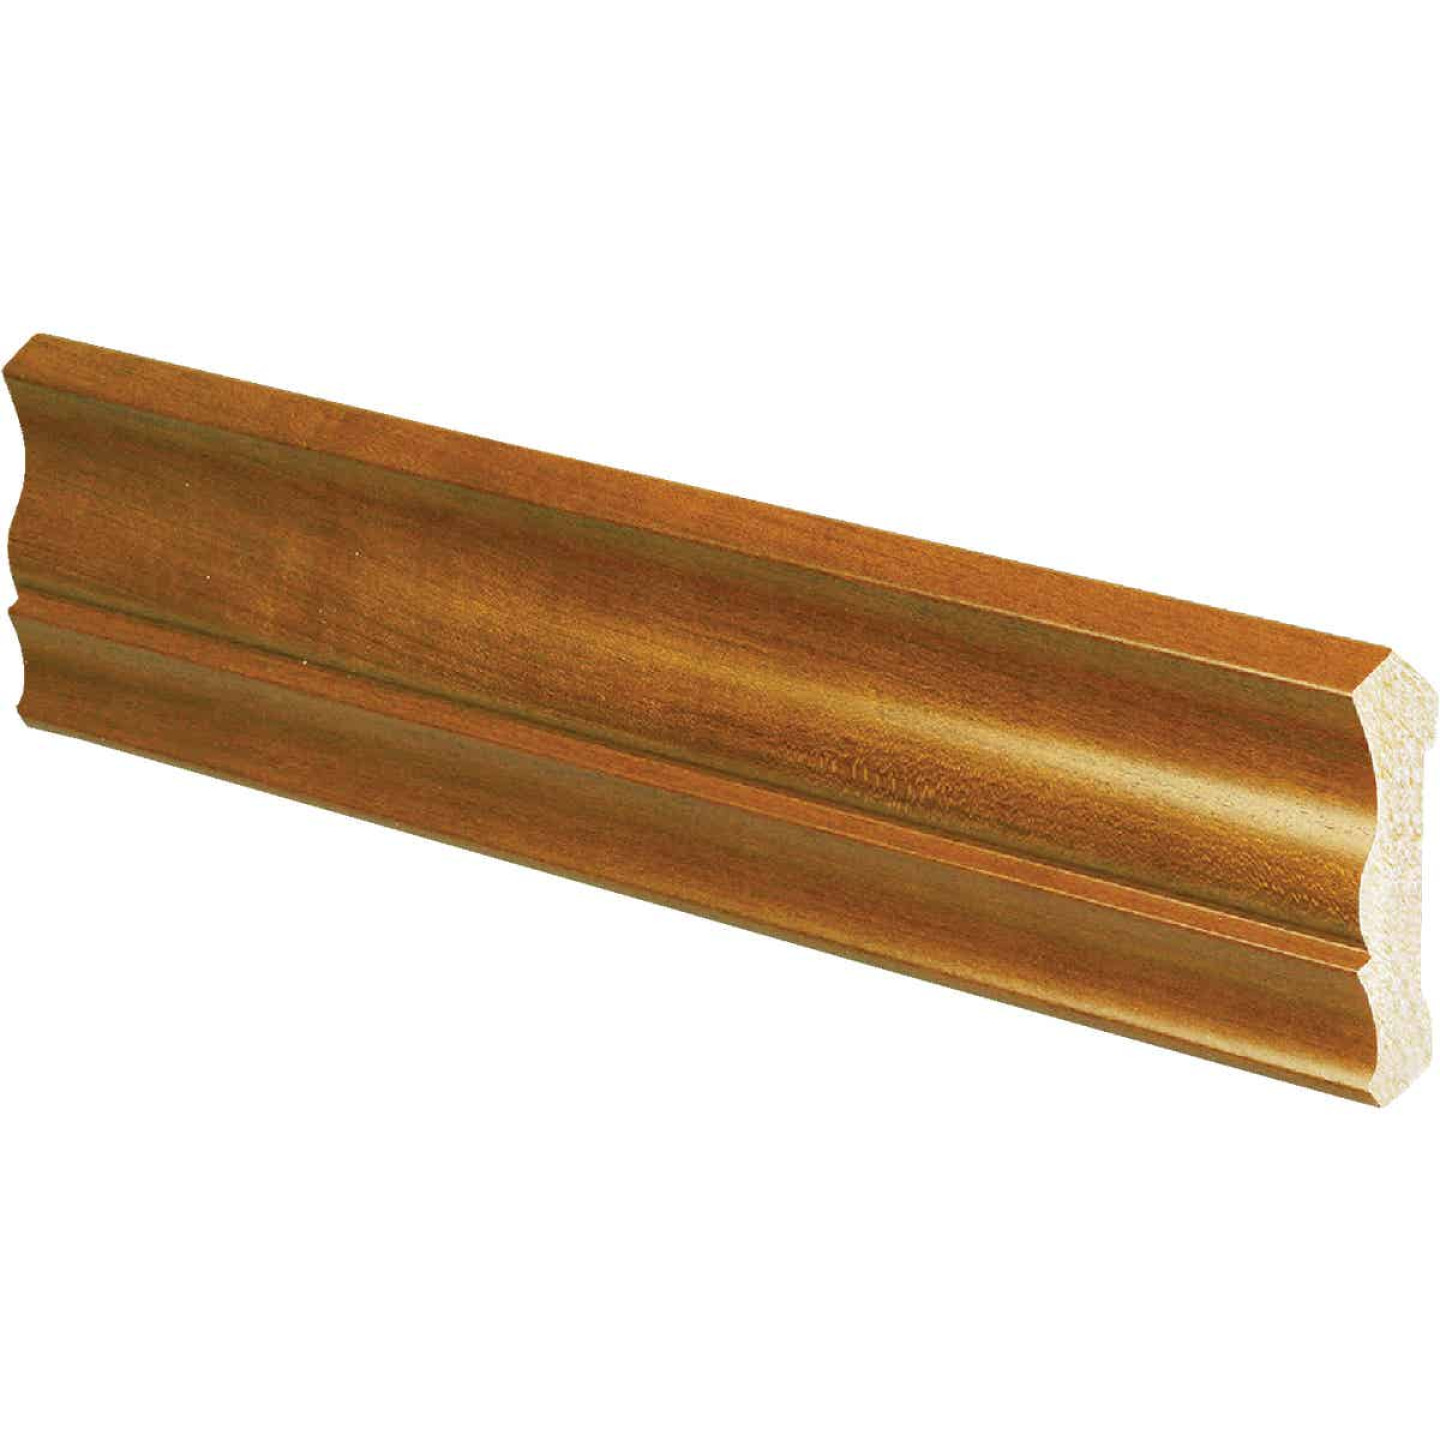 Inteplast Building Products 1/2 In. W. x 3-3/16 In. H. x 8 Ft. L. Independence Cherry Polystyrene Crown Molding Image 1